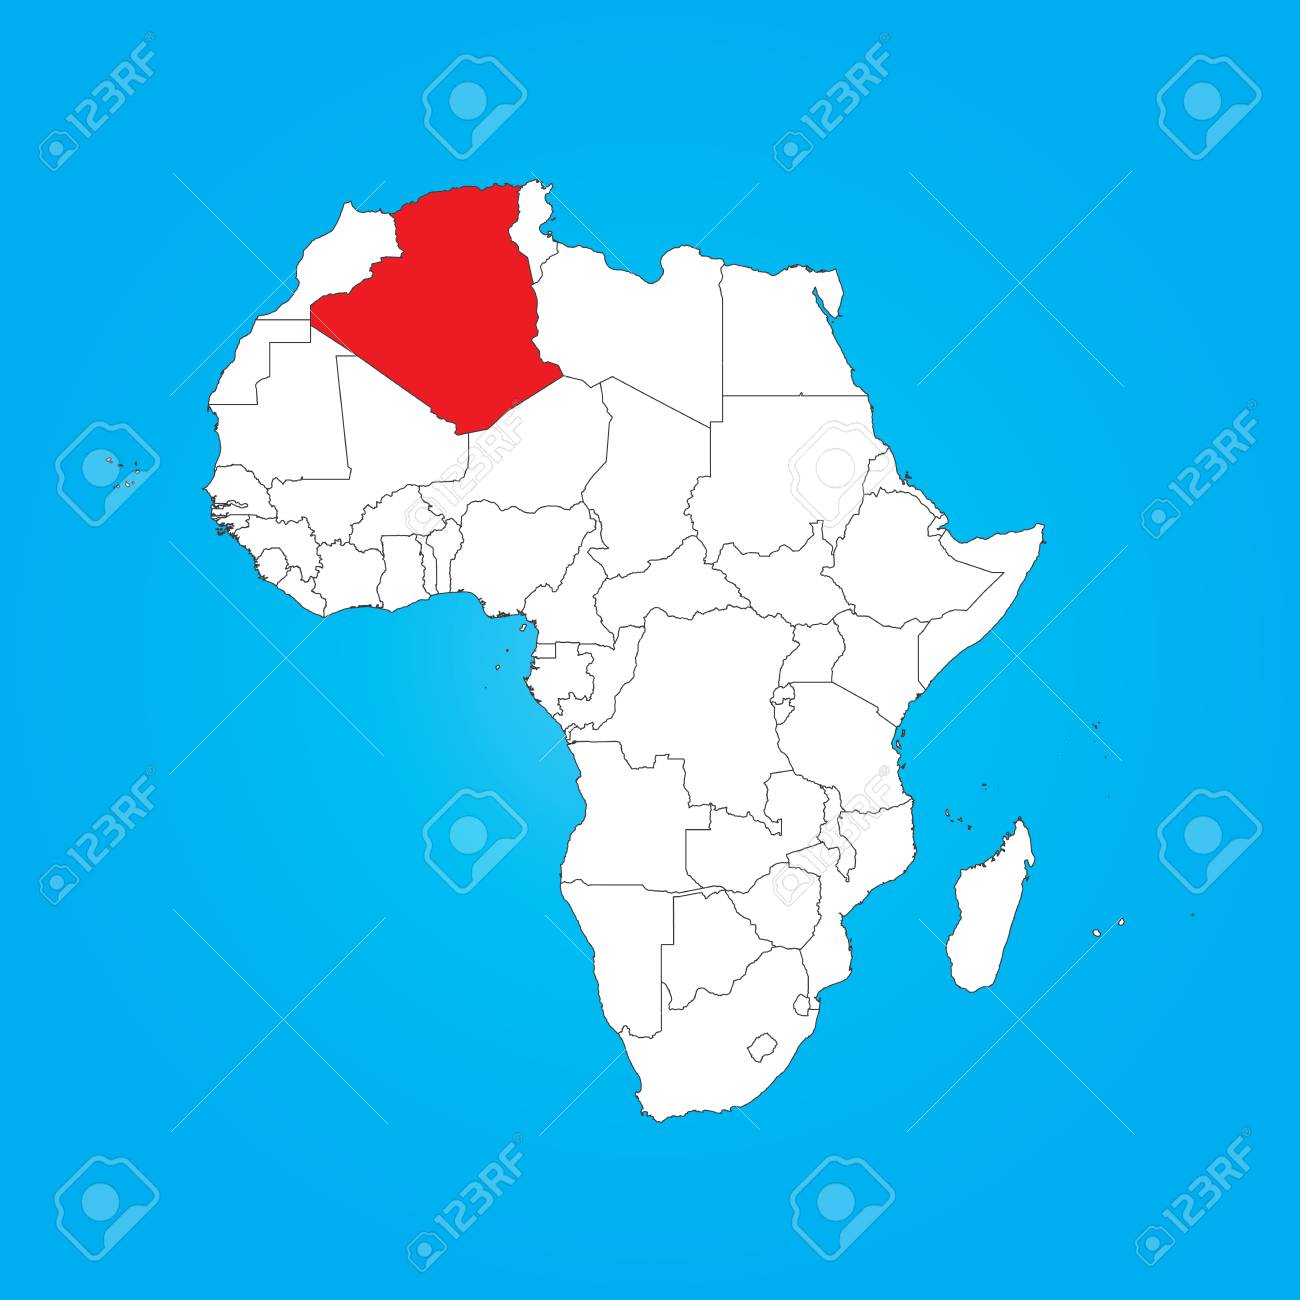 Map Of Algeria Africa A Map Of Africa With A Selected Country Of Algeria Stock Photo